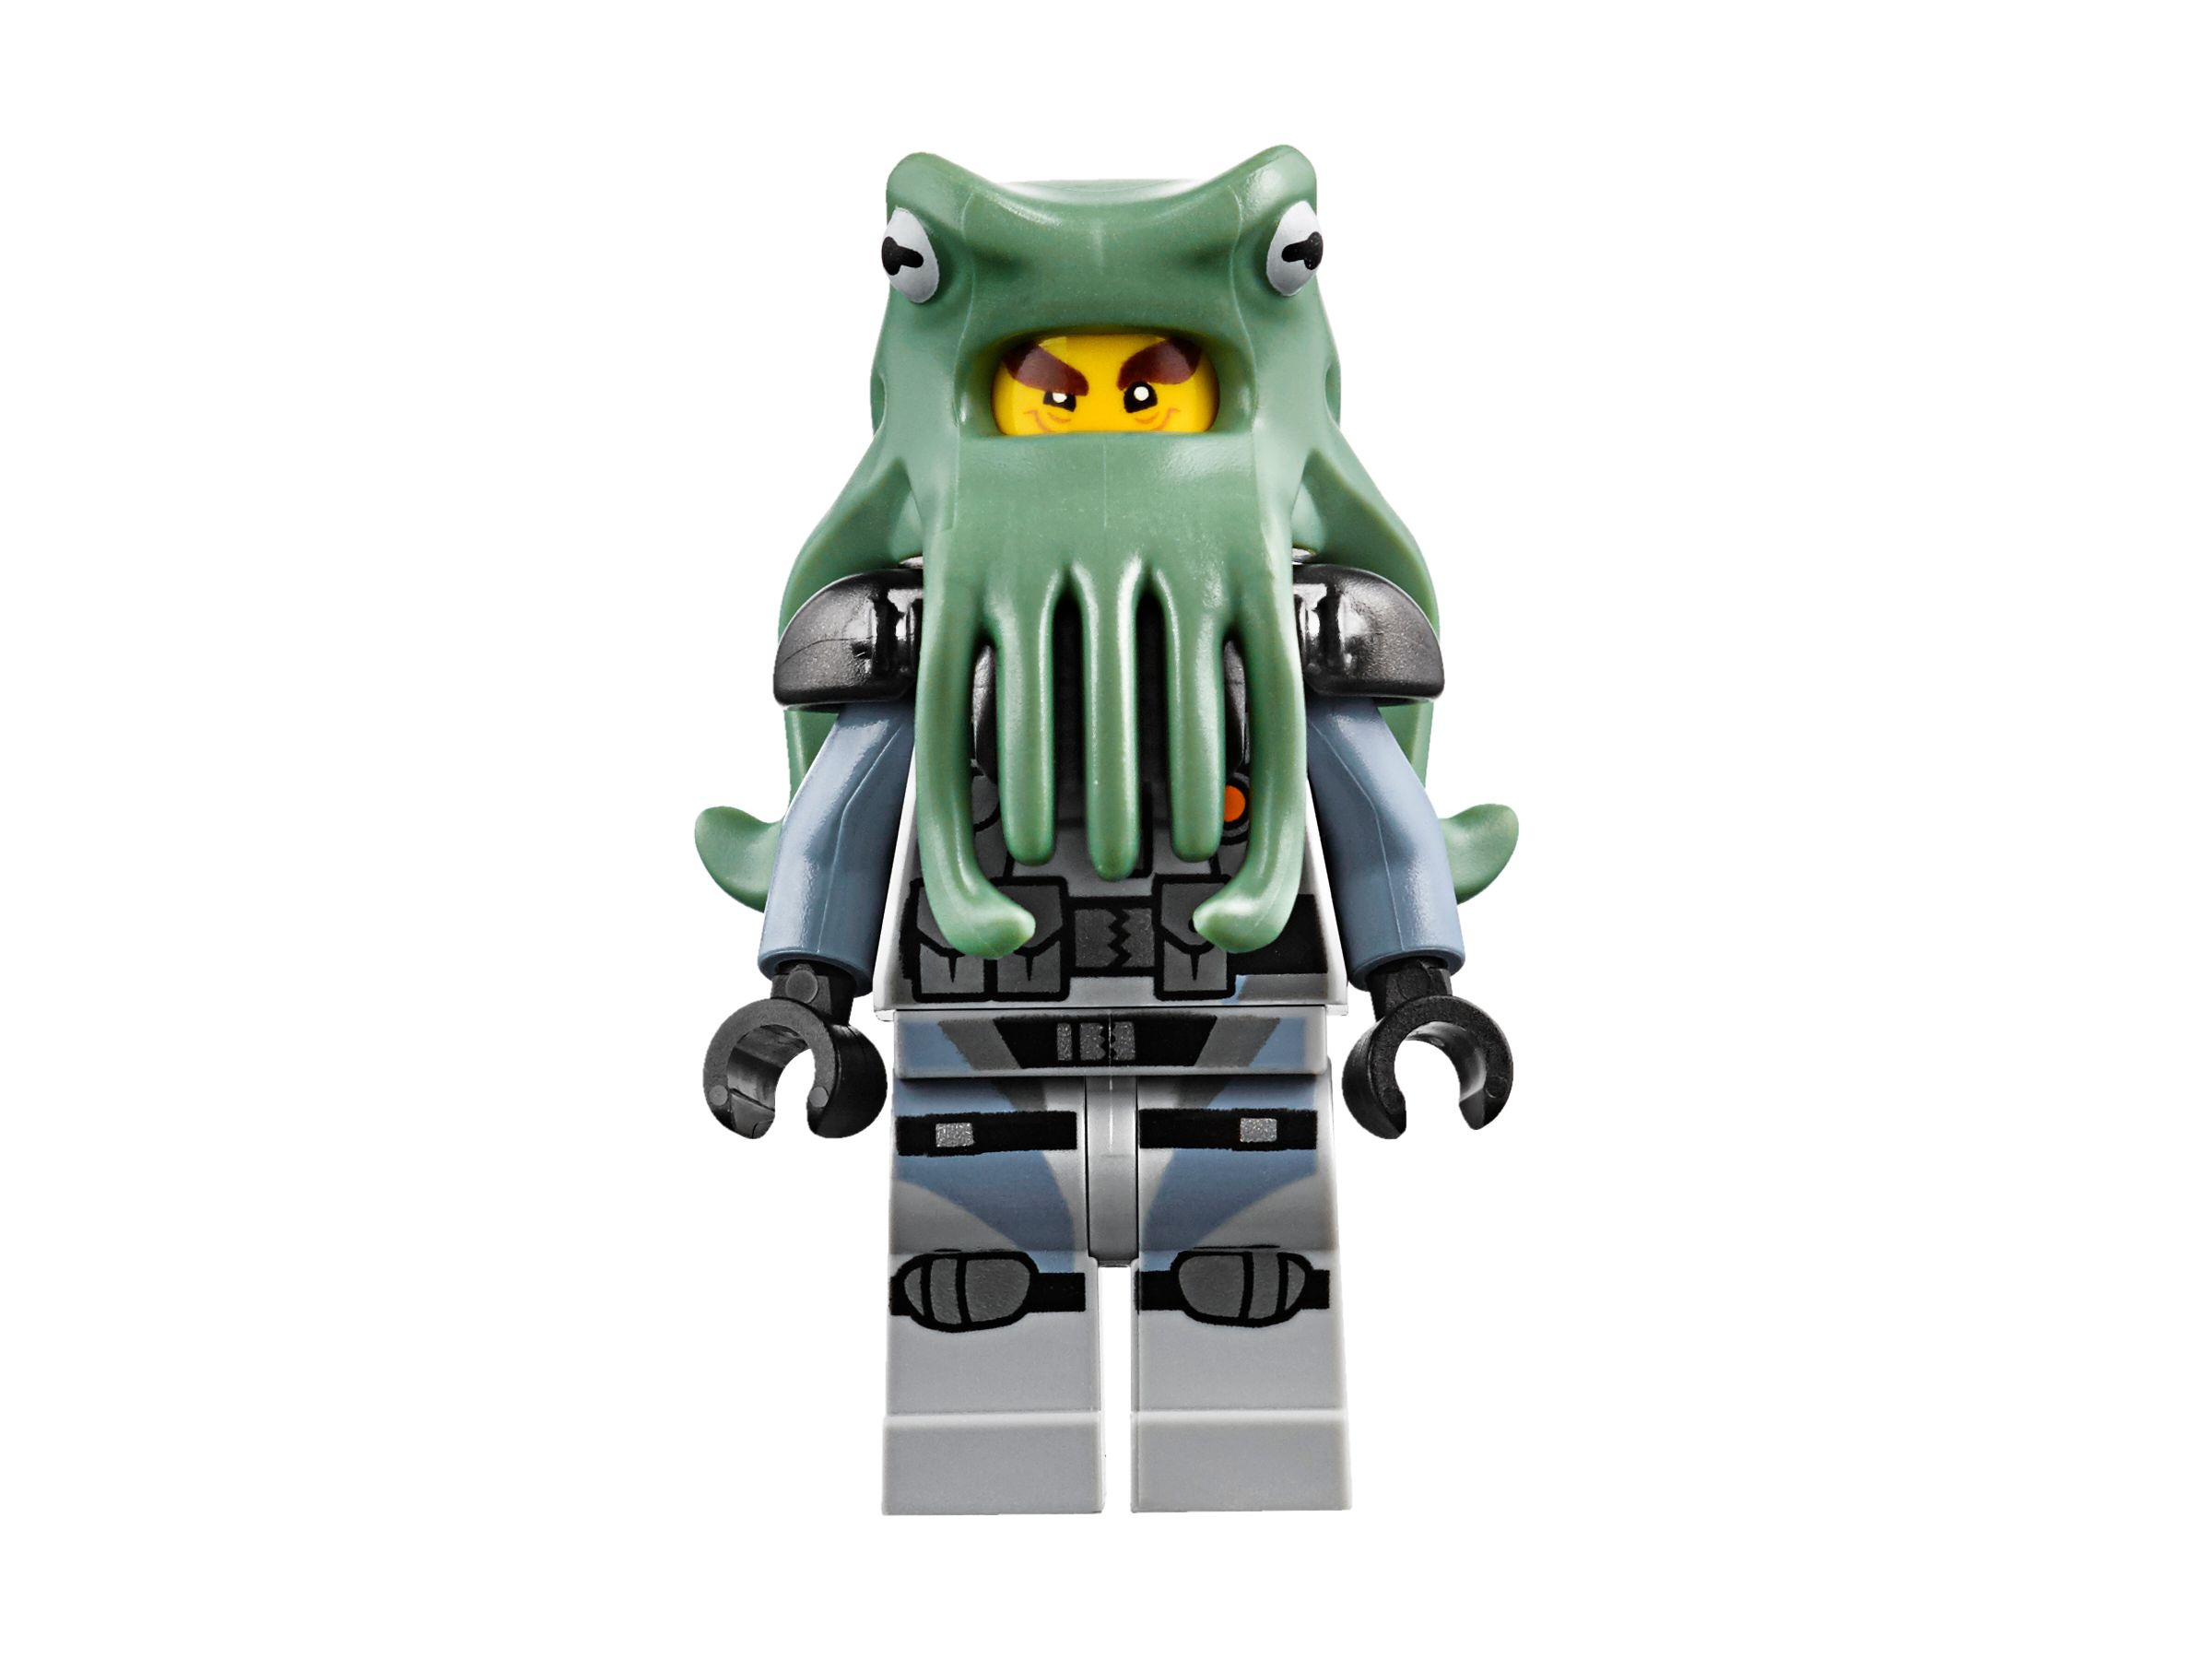 LEGO The LEGO Ninjago Movie 70631 Garmadons Vulkanversteck LEGO_70631_alt8.jpg